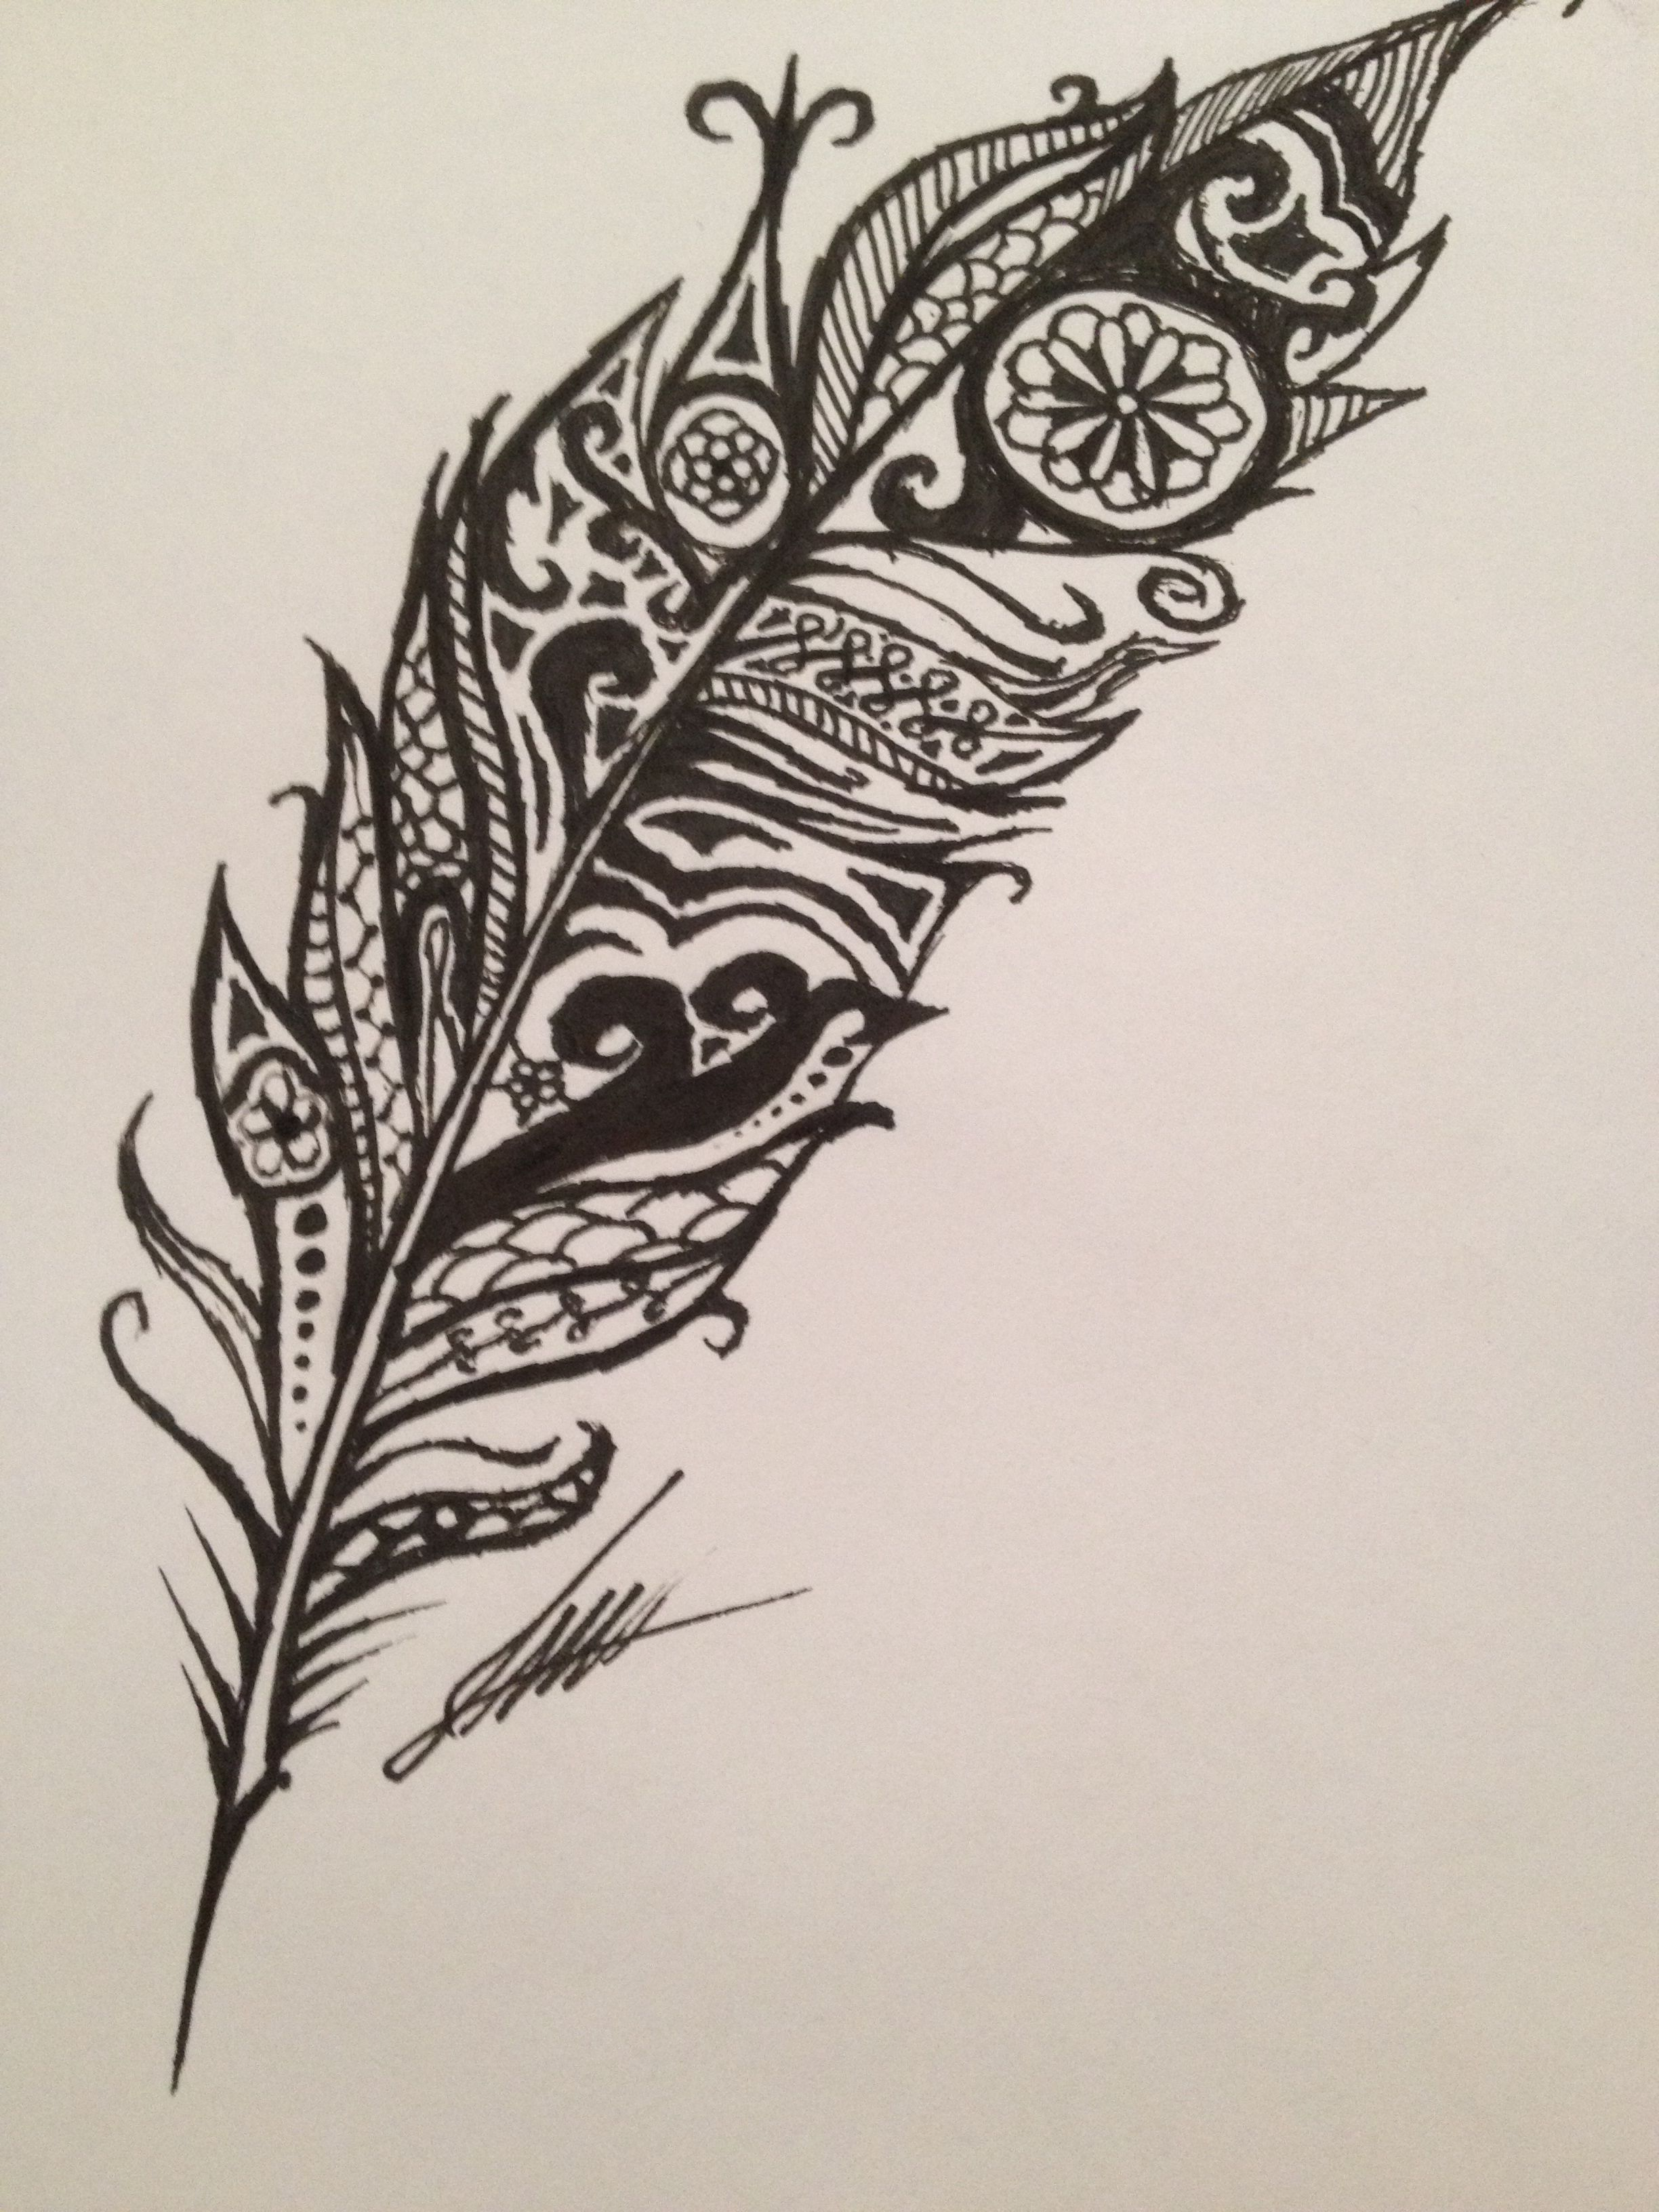 Line Art Feather : Sharpie feather drawing made of doodles random art and drawings